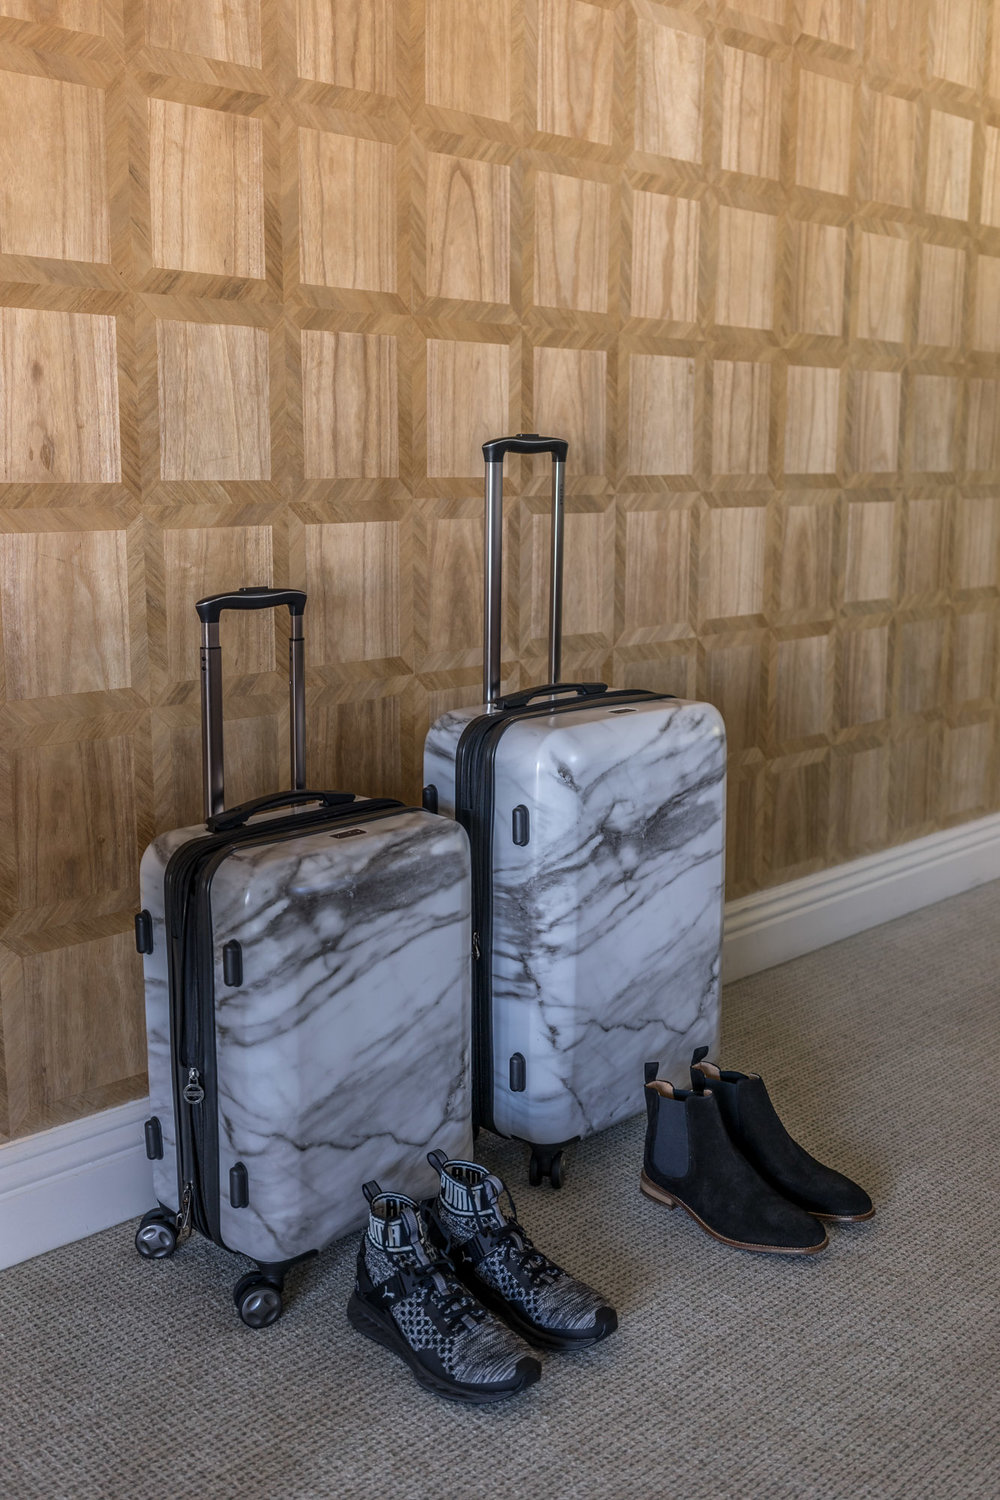 The Calpak Marble Suitcase Everyone Is Obsessed With